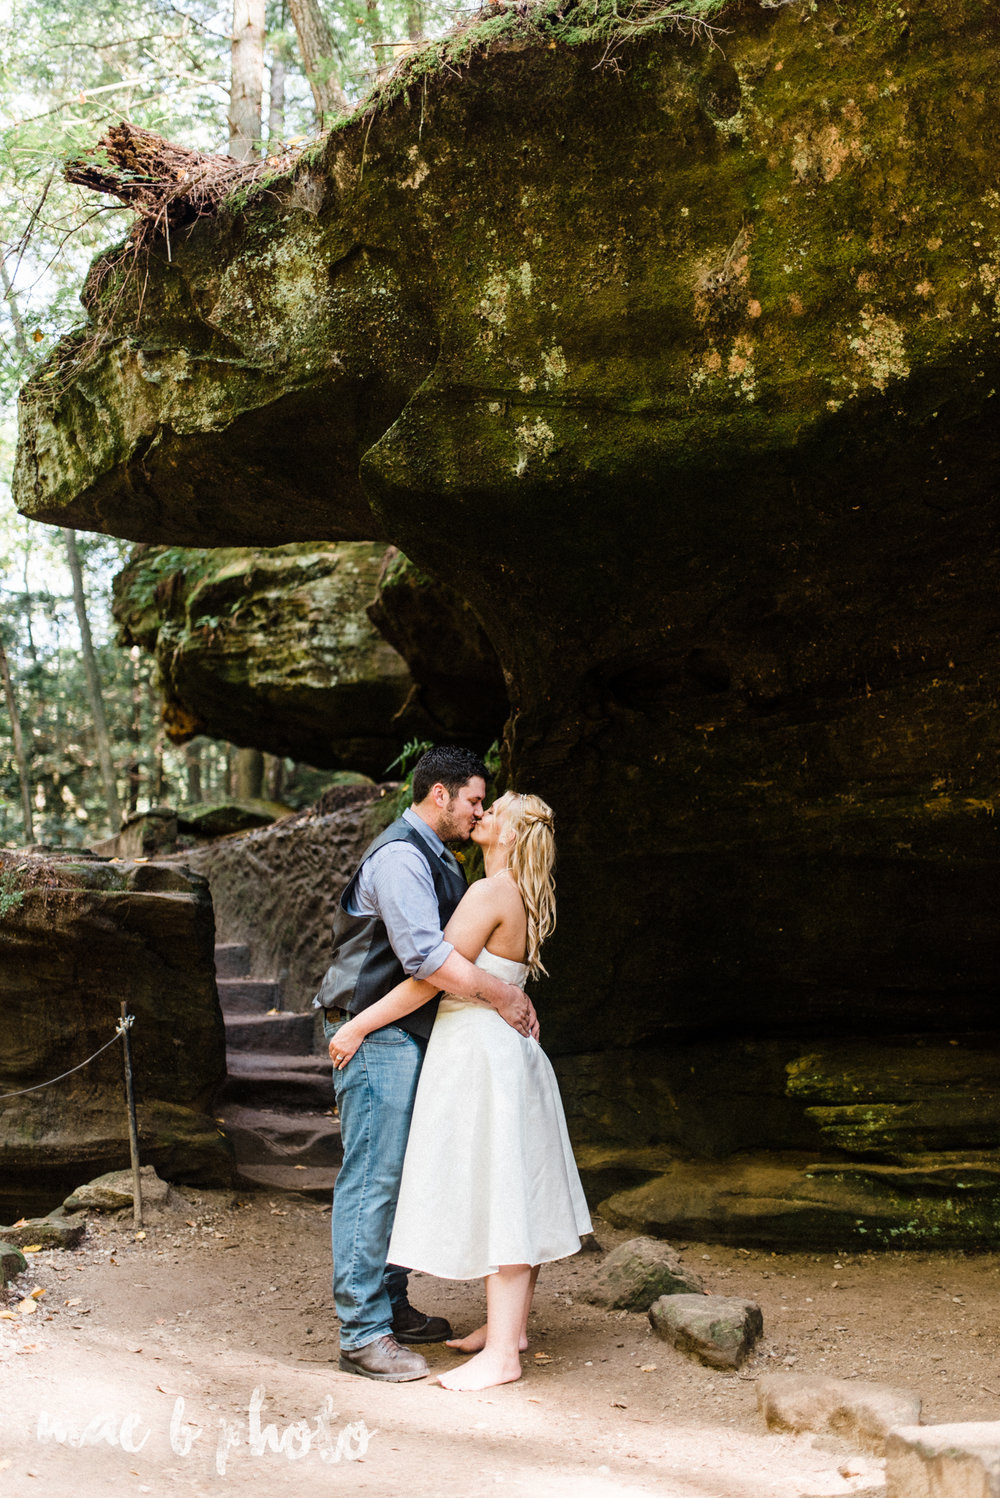 bobbi and pat's intimate fall cabin elopement in hocking hills old man's cave and rock house in logan ohio photographed by youngstown wedding photographer mae b photo-68.jpg